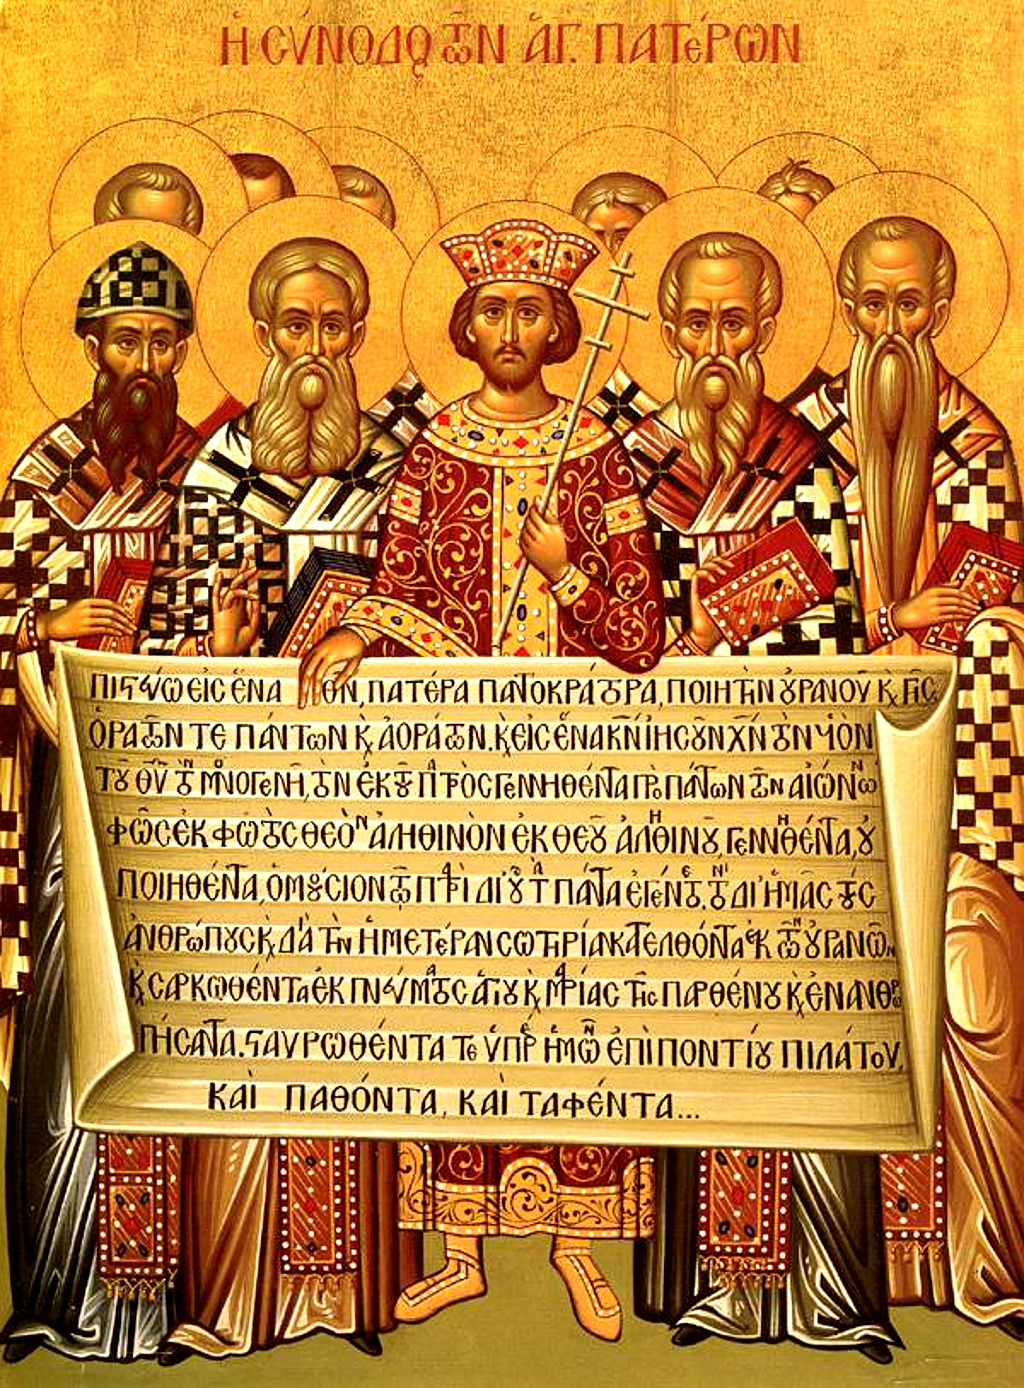 https://i1.wp.com/upload.wikimedia.org/wikipedia/commons/3/31/Nicaea_icon.jpg